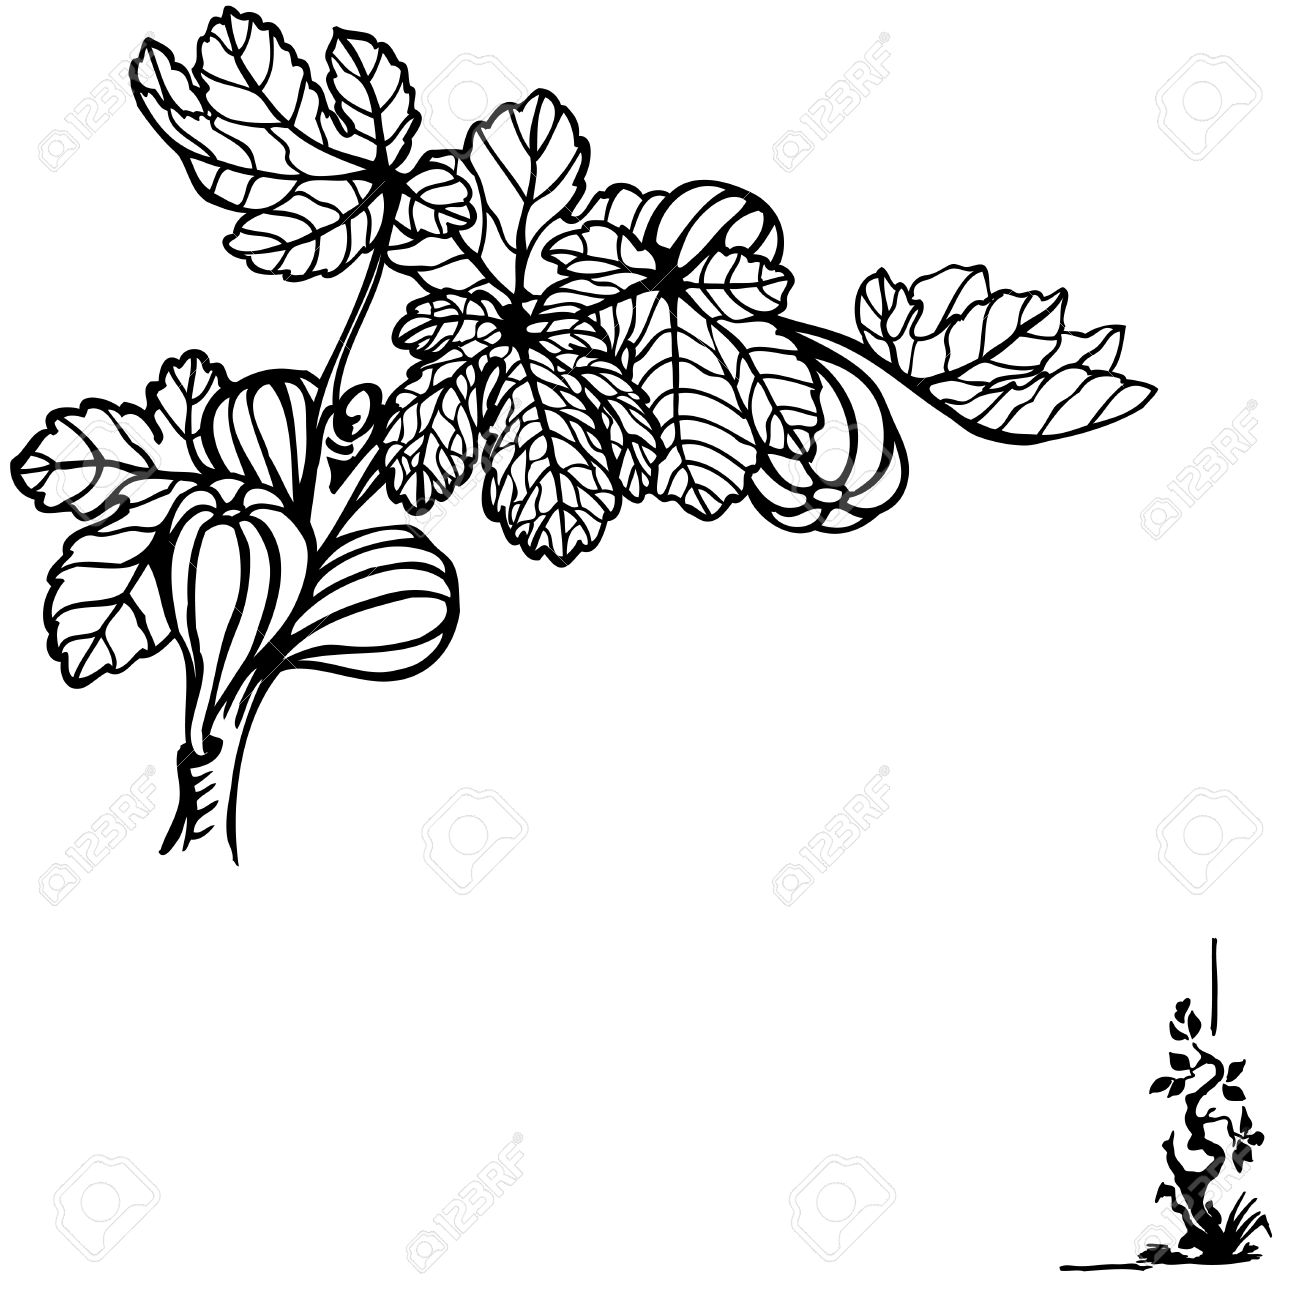 A Branch Of A Fig With Berries And Leaves. Drawing. Vintage.